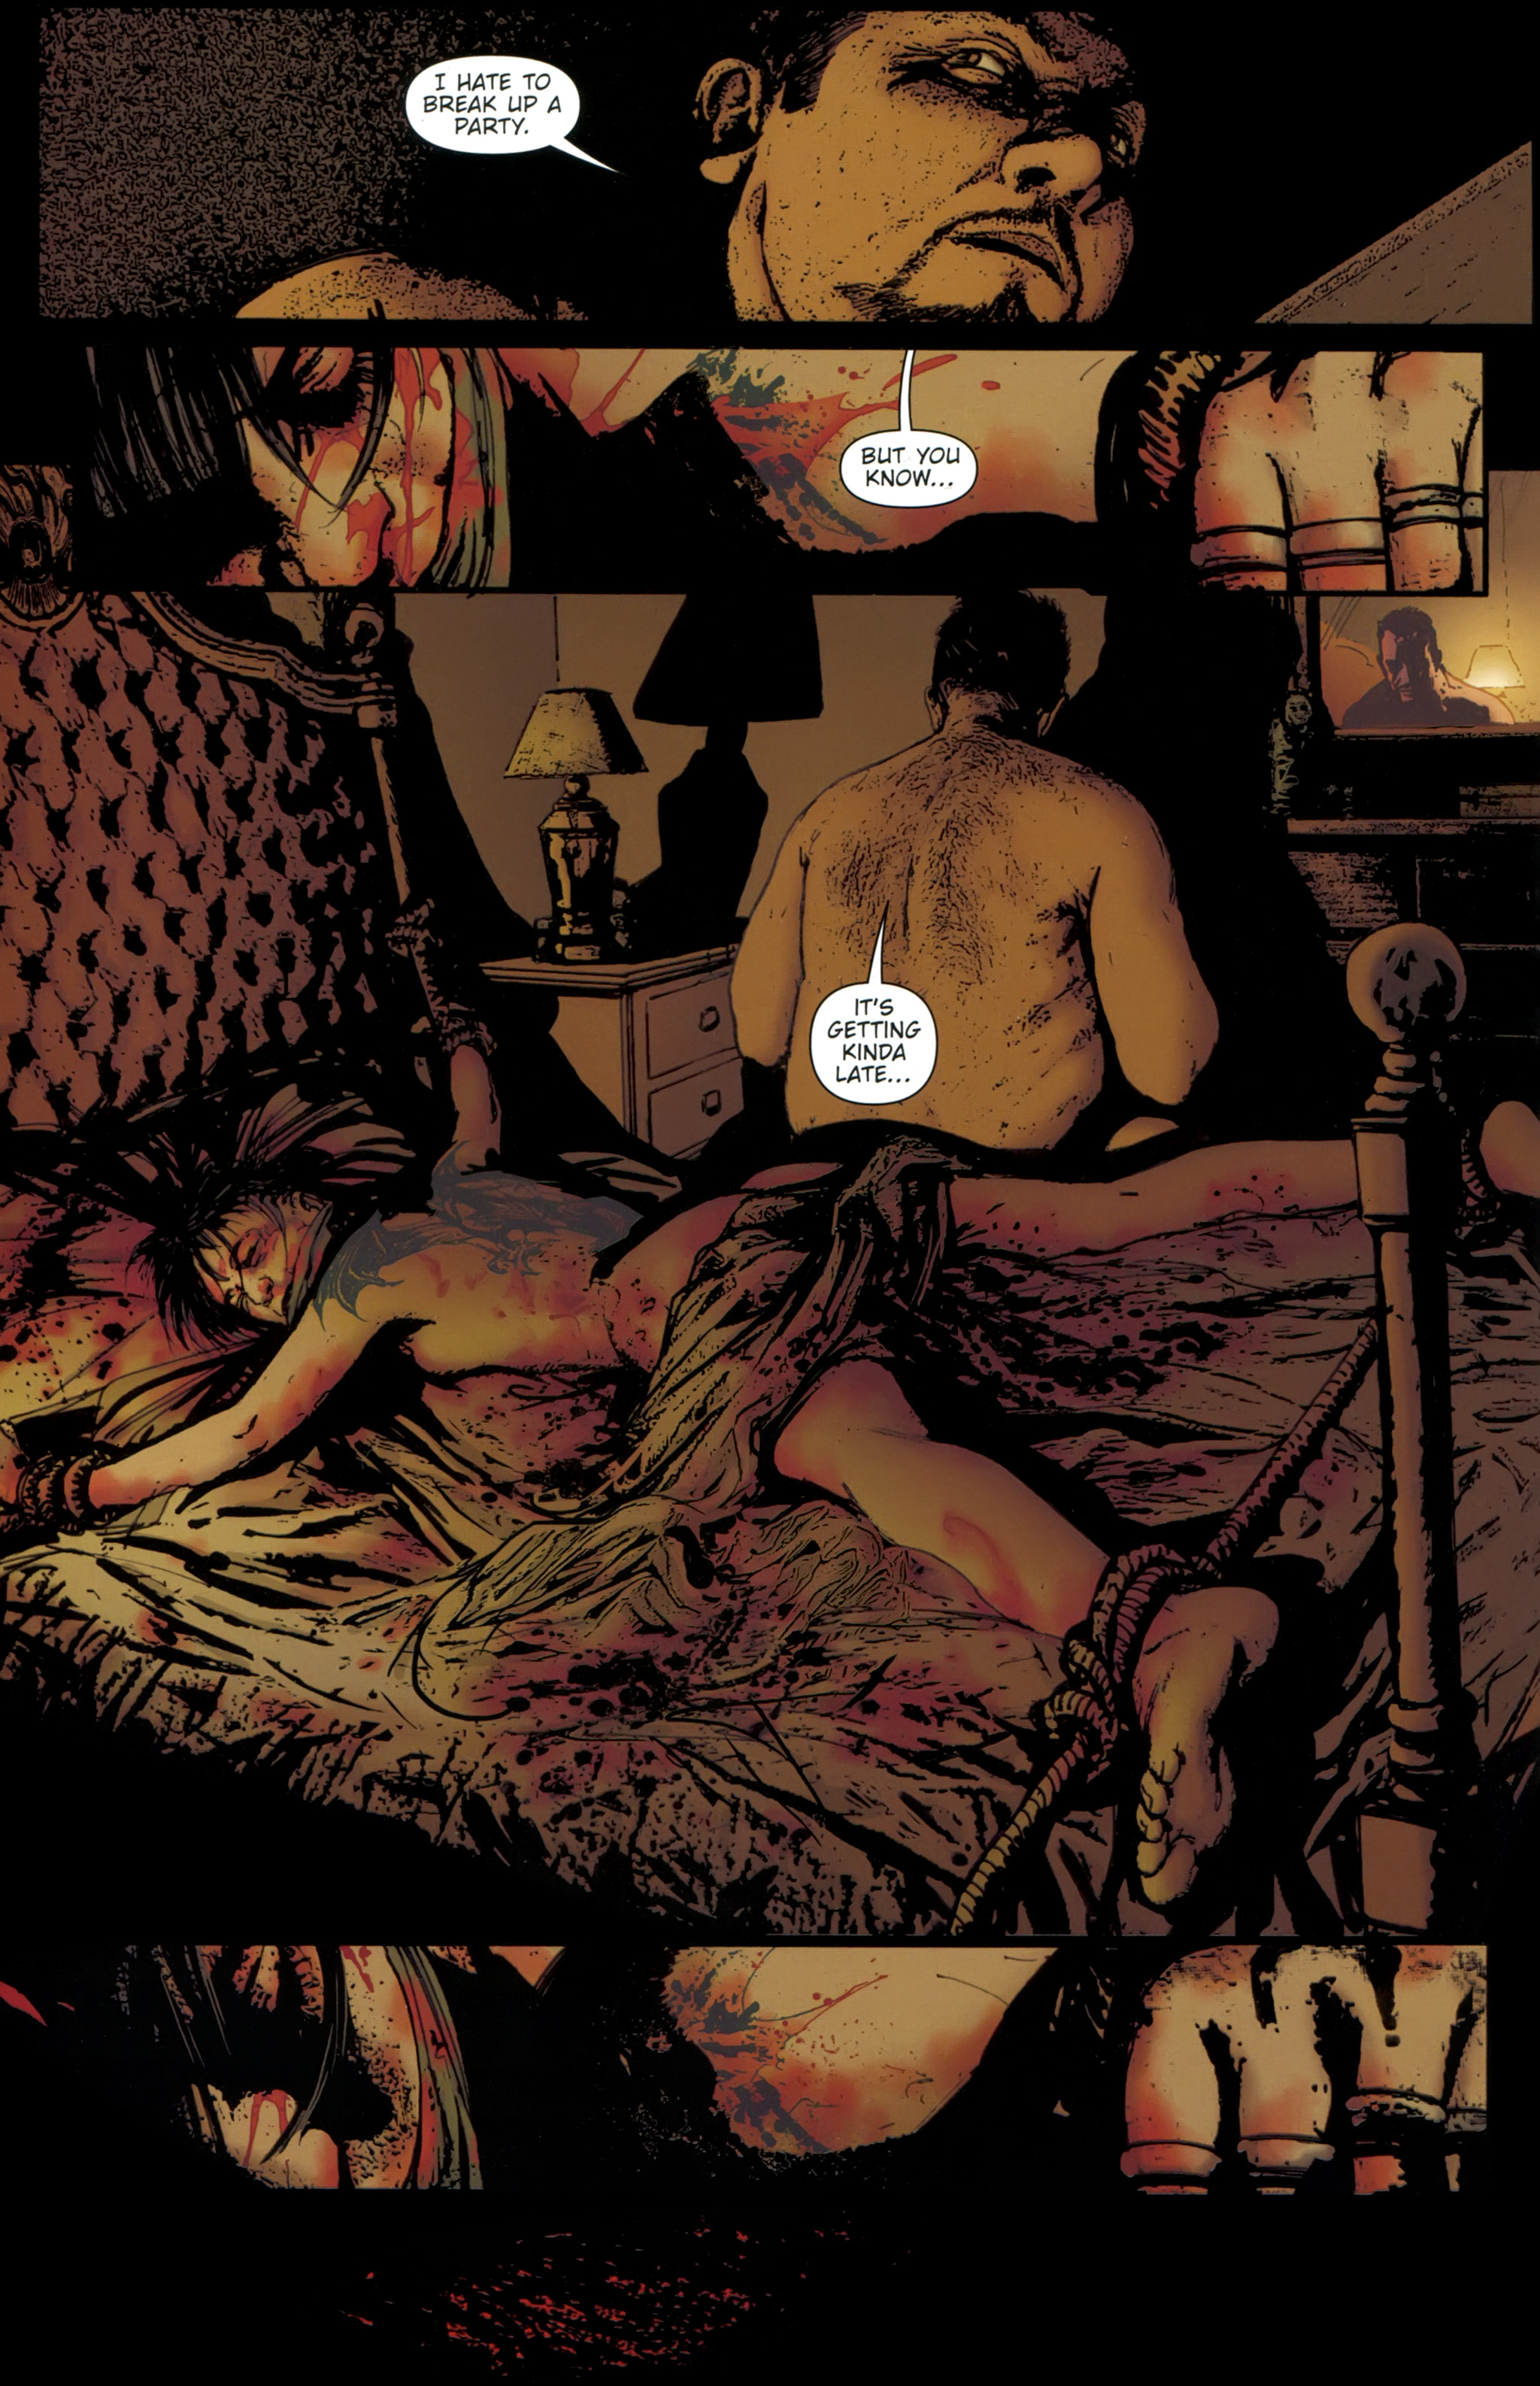 Read online The Girl With the Dragon Tattoo comic -  Issue # TPB 1 - 123